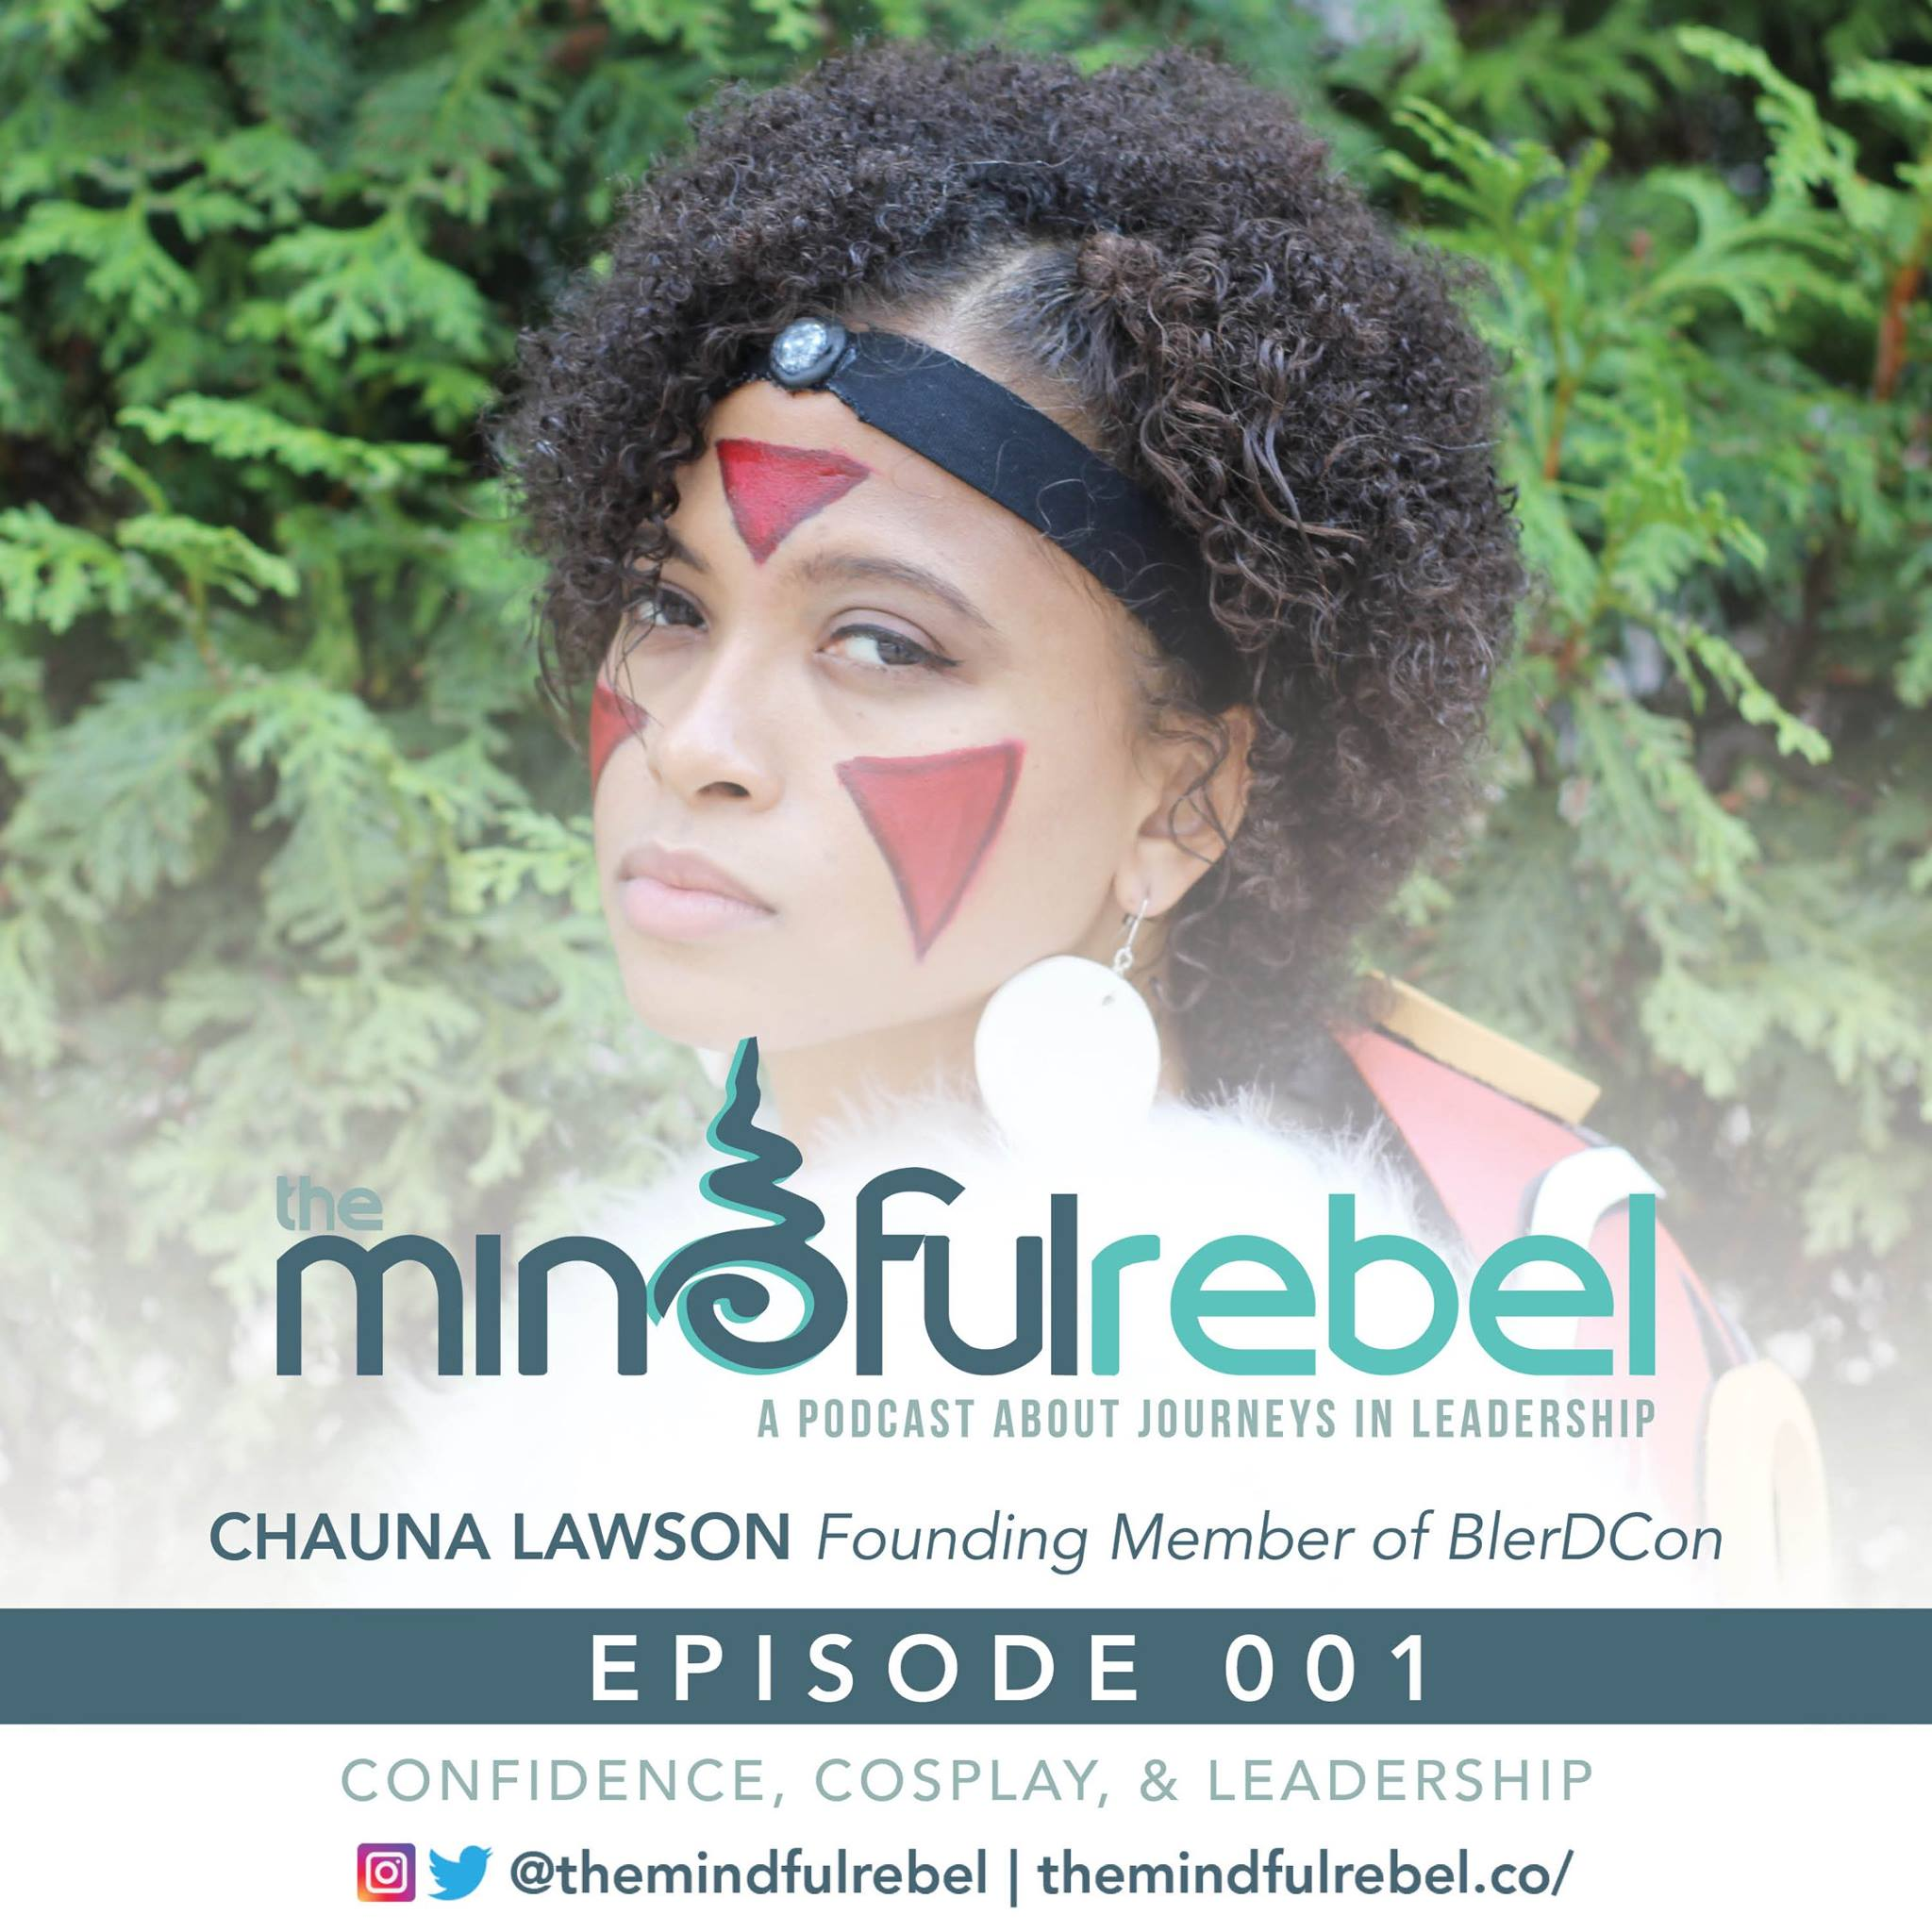 "Episode 001 Chauna Lawson Founding Committee Member of BlerDCon   www.blerDCon.com     Twitter: @blerdcondc @ccthegreekgeek    Instagram: @blerdcon @ccthegreekgeek   Chauna Lawson is a Founding Committee Member of BlerdCon, the first convention of its kind to host a traditional convention structure of panels, celebrity guests, presentations, workshops, gaming tournaments, cosplay contests music and dance while highlighting and showcasing the rich diversity of the minority community contributing in those genres. Chauna is a Bowie State University Class of 2009 alumna with a degree Sociology. She is currently pursuing a Master's Degree at Howard University in History. She bega cosplaying in September 2015. Chauna always had an interest in cosplay, but was reluctant due to potential financial constraints and body insecurities, however, she realized it was important that women of color see other ordinary women of color doing extraordinary things. Chauna currently focuses on activism in cosplay. As a founding committee member of BlerDCon, she seeks to help provide a safe space for blerds* to discuss issues in the geek world that are important to them...the good, the bad, and the ugly. BlerDCon seeks to bringing overdue attention and focus to people of color in sci-fi, fantasy, anime, comics, and more.  *Blerd is shorthand for ""black nerd"" but is often used as a self-descriptive term for people of all colors within the minority community of geeks. While Blerd is the organizing principle of this con, we are expanding its meaning to encompass the far corners of diversity that represent the growth population for all that we love about nerd-dom."